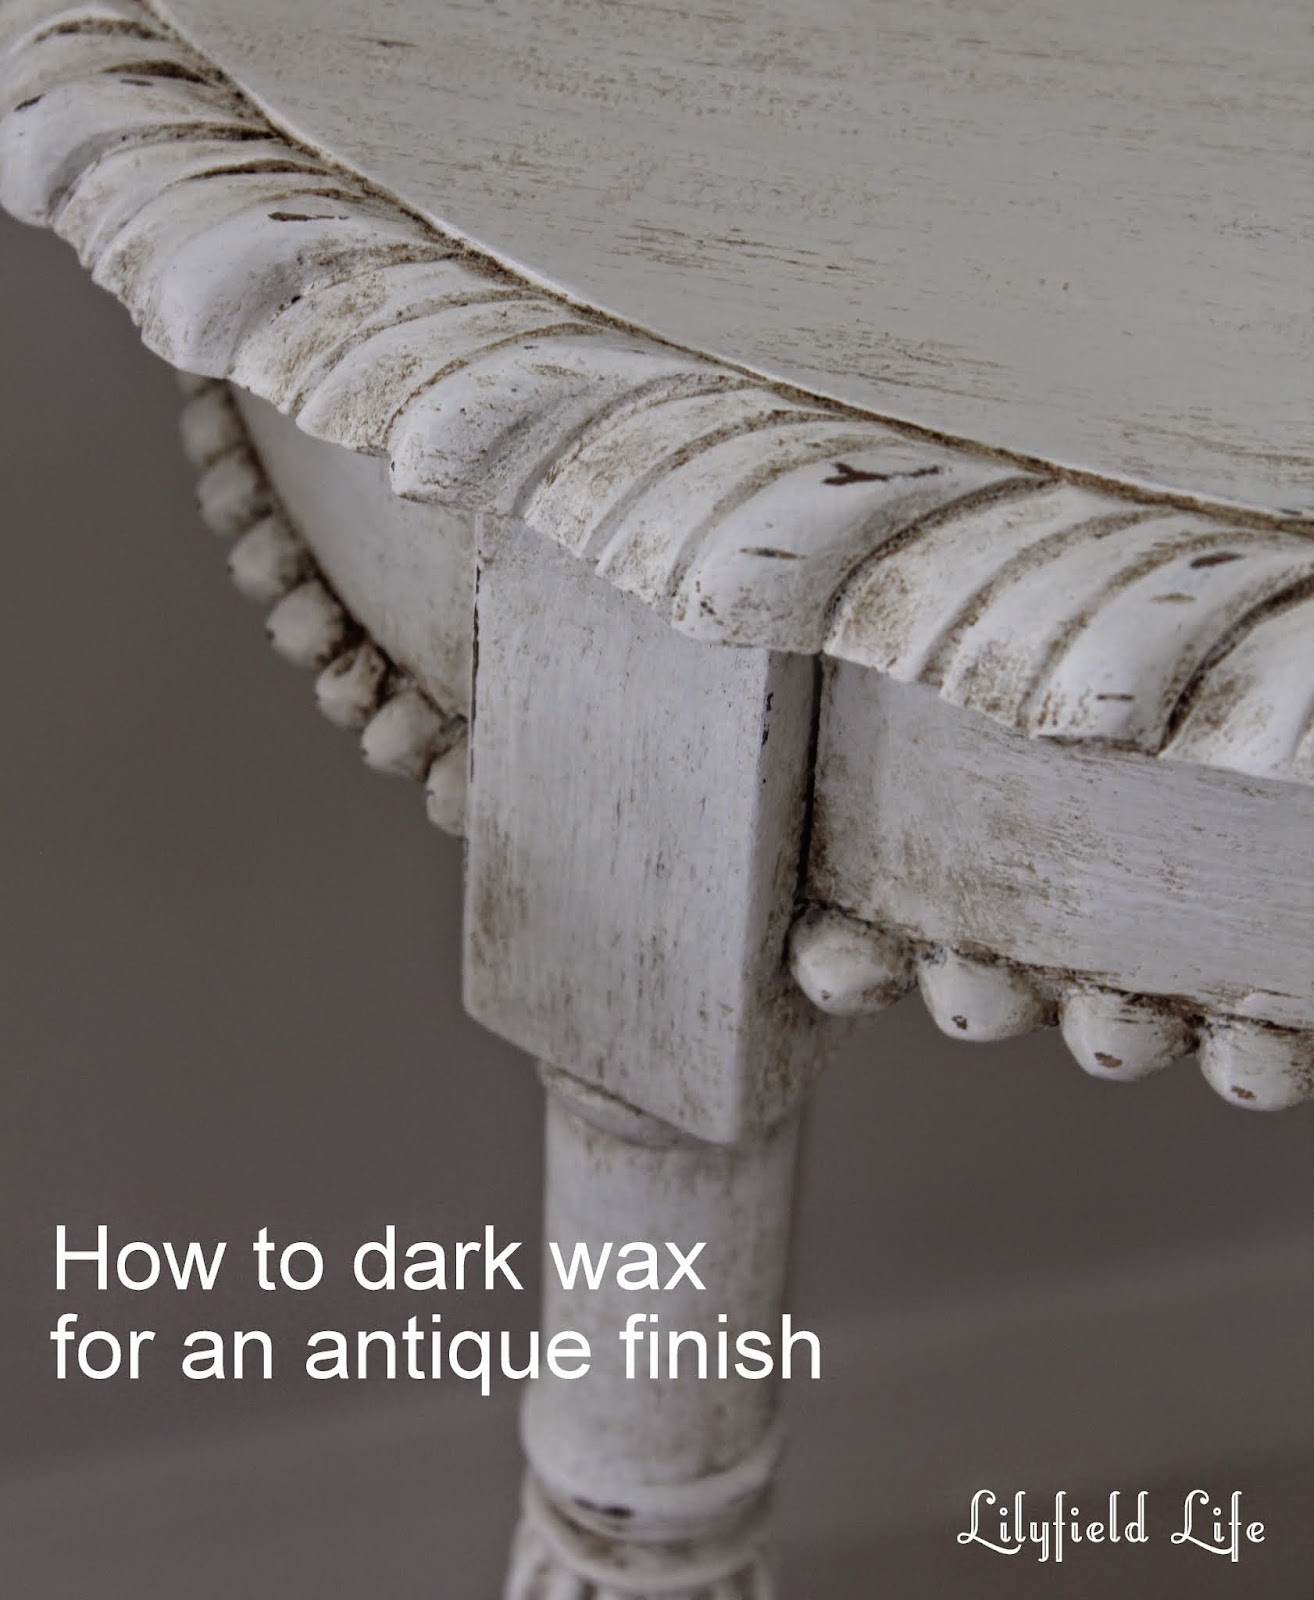 Starters' Guide: how to Antique Painted Furniture using Dark Wax - Lilyfield Life: Starters' Guide: How To Antique Painted Furniture